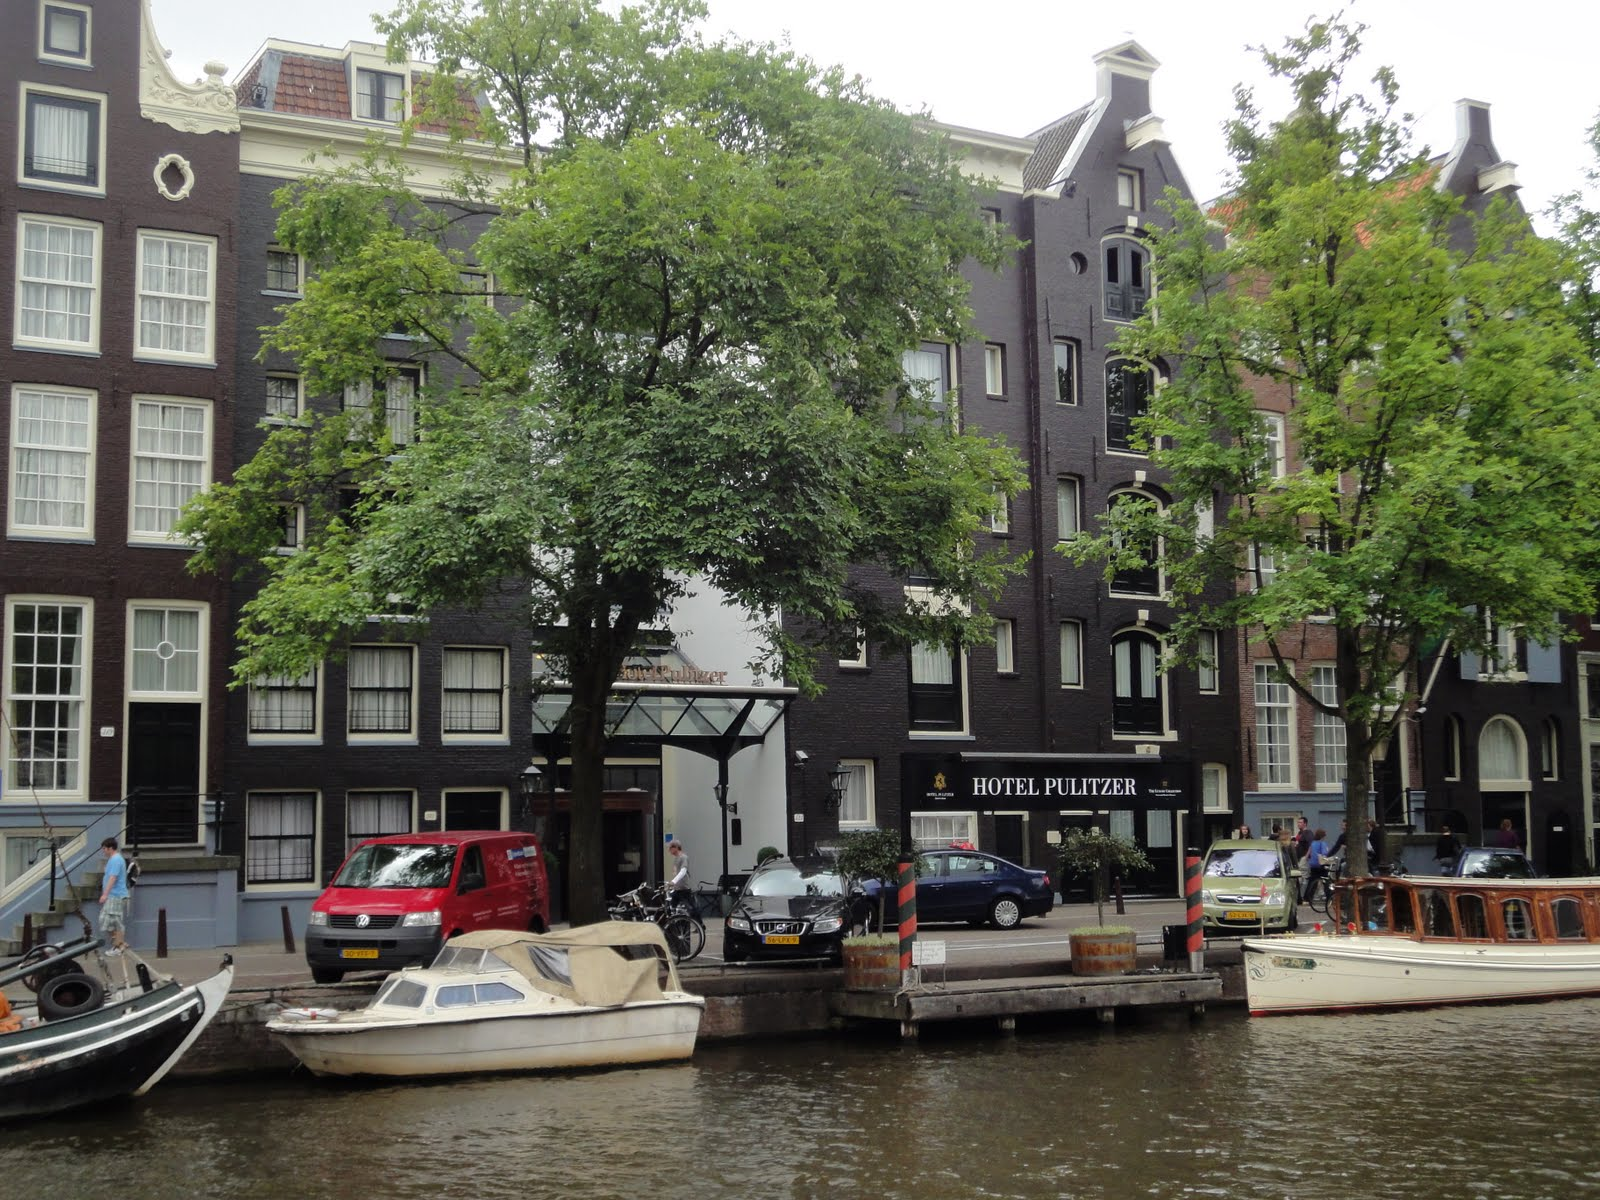 My favorite hotels in the world hotel pulitzer amsterdam for Pulitzer hotel in amsterdam